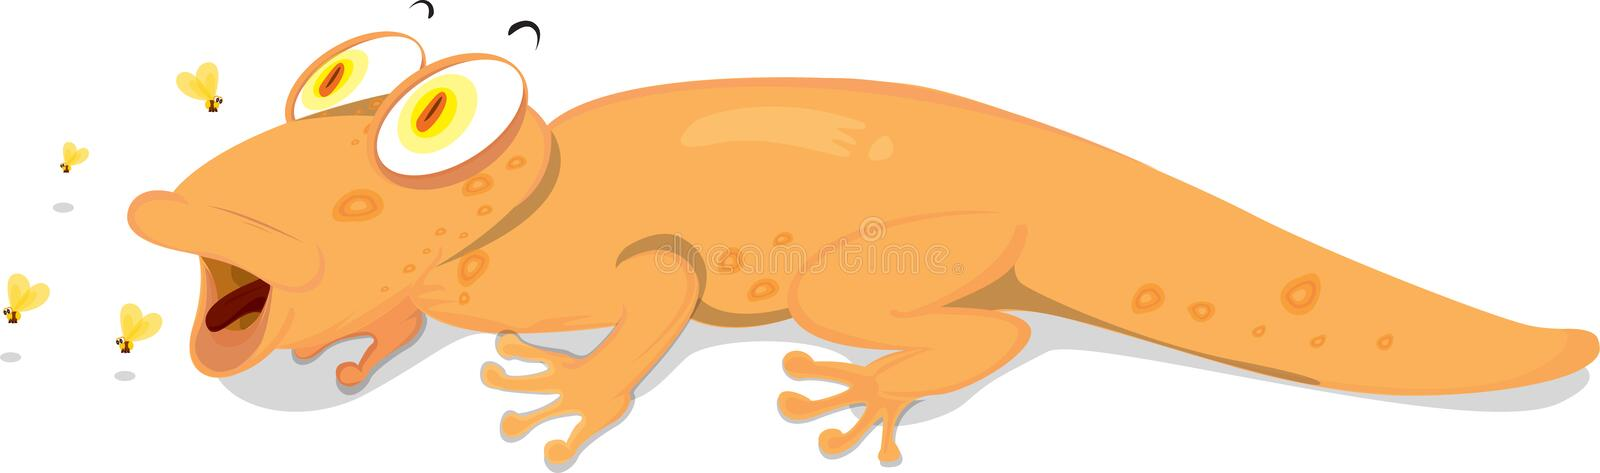 Download A Lizard Catching Prey Royalty Free Stock Photography - Image: 14274517